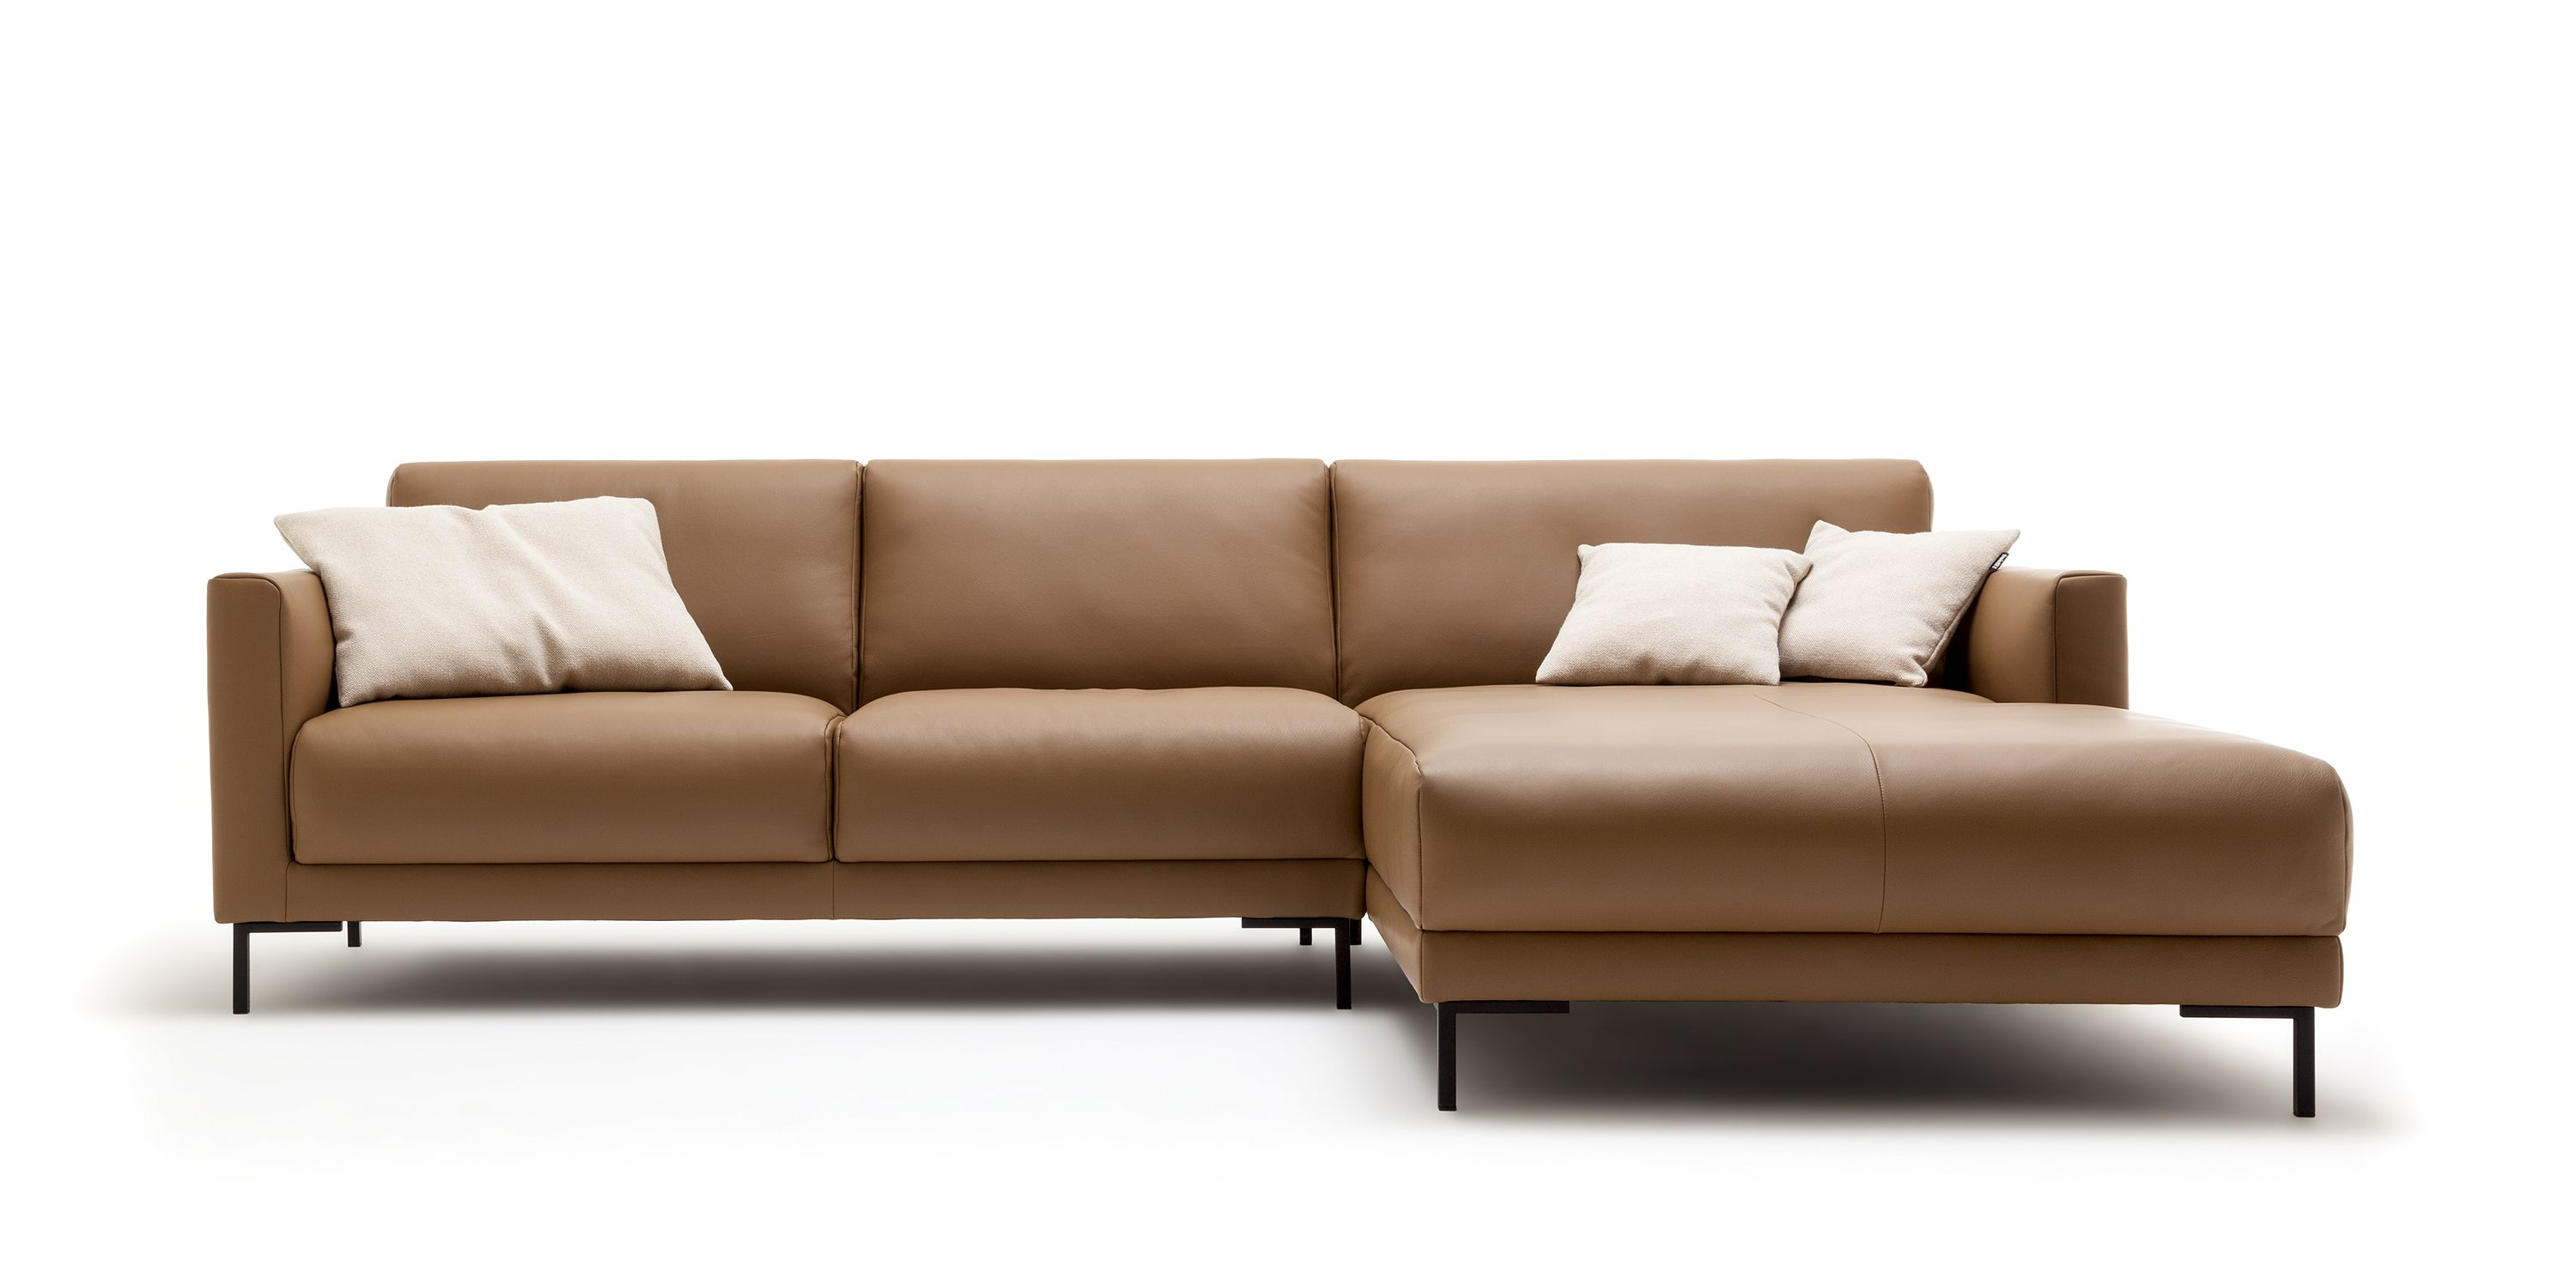 Freistil 141 sectional sofa Available at Studio Anise Rolf Benz